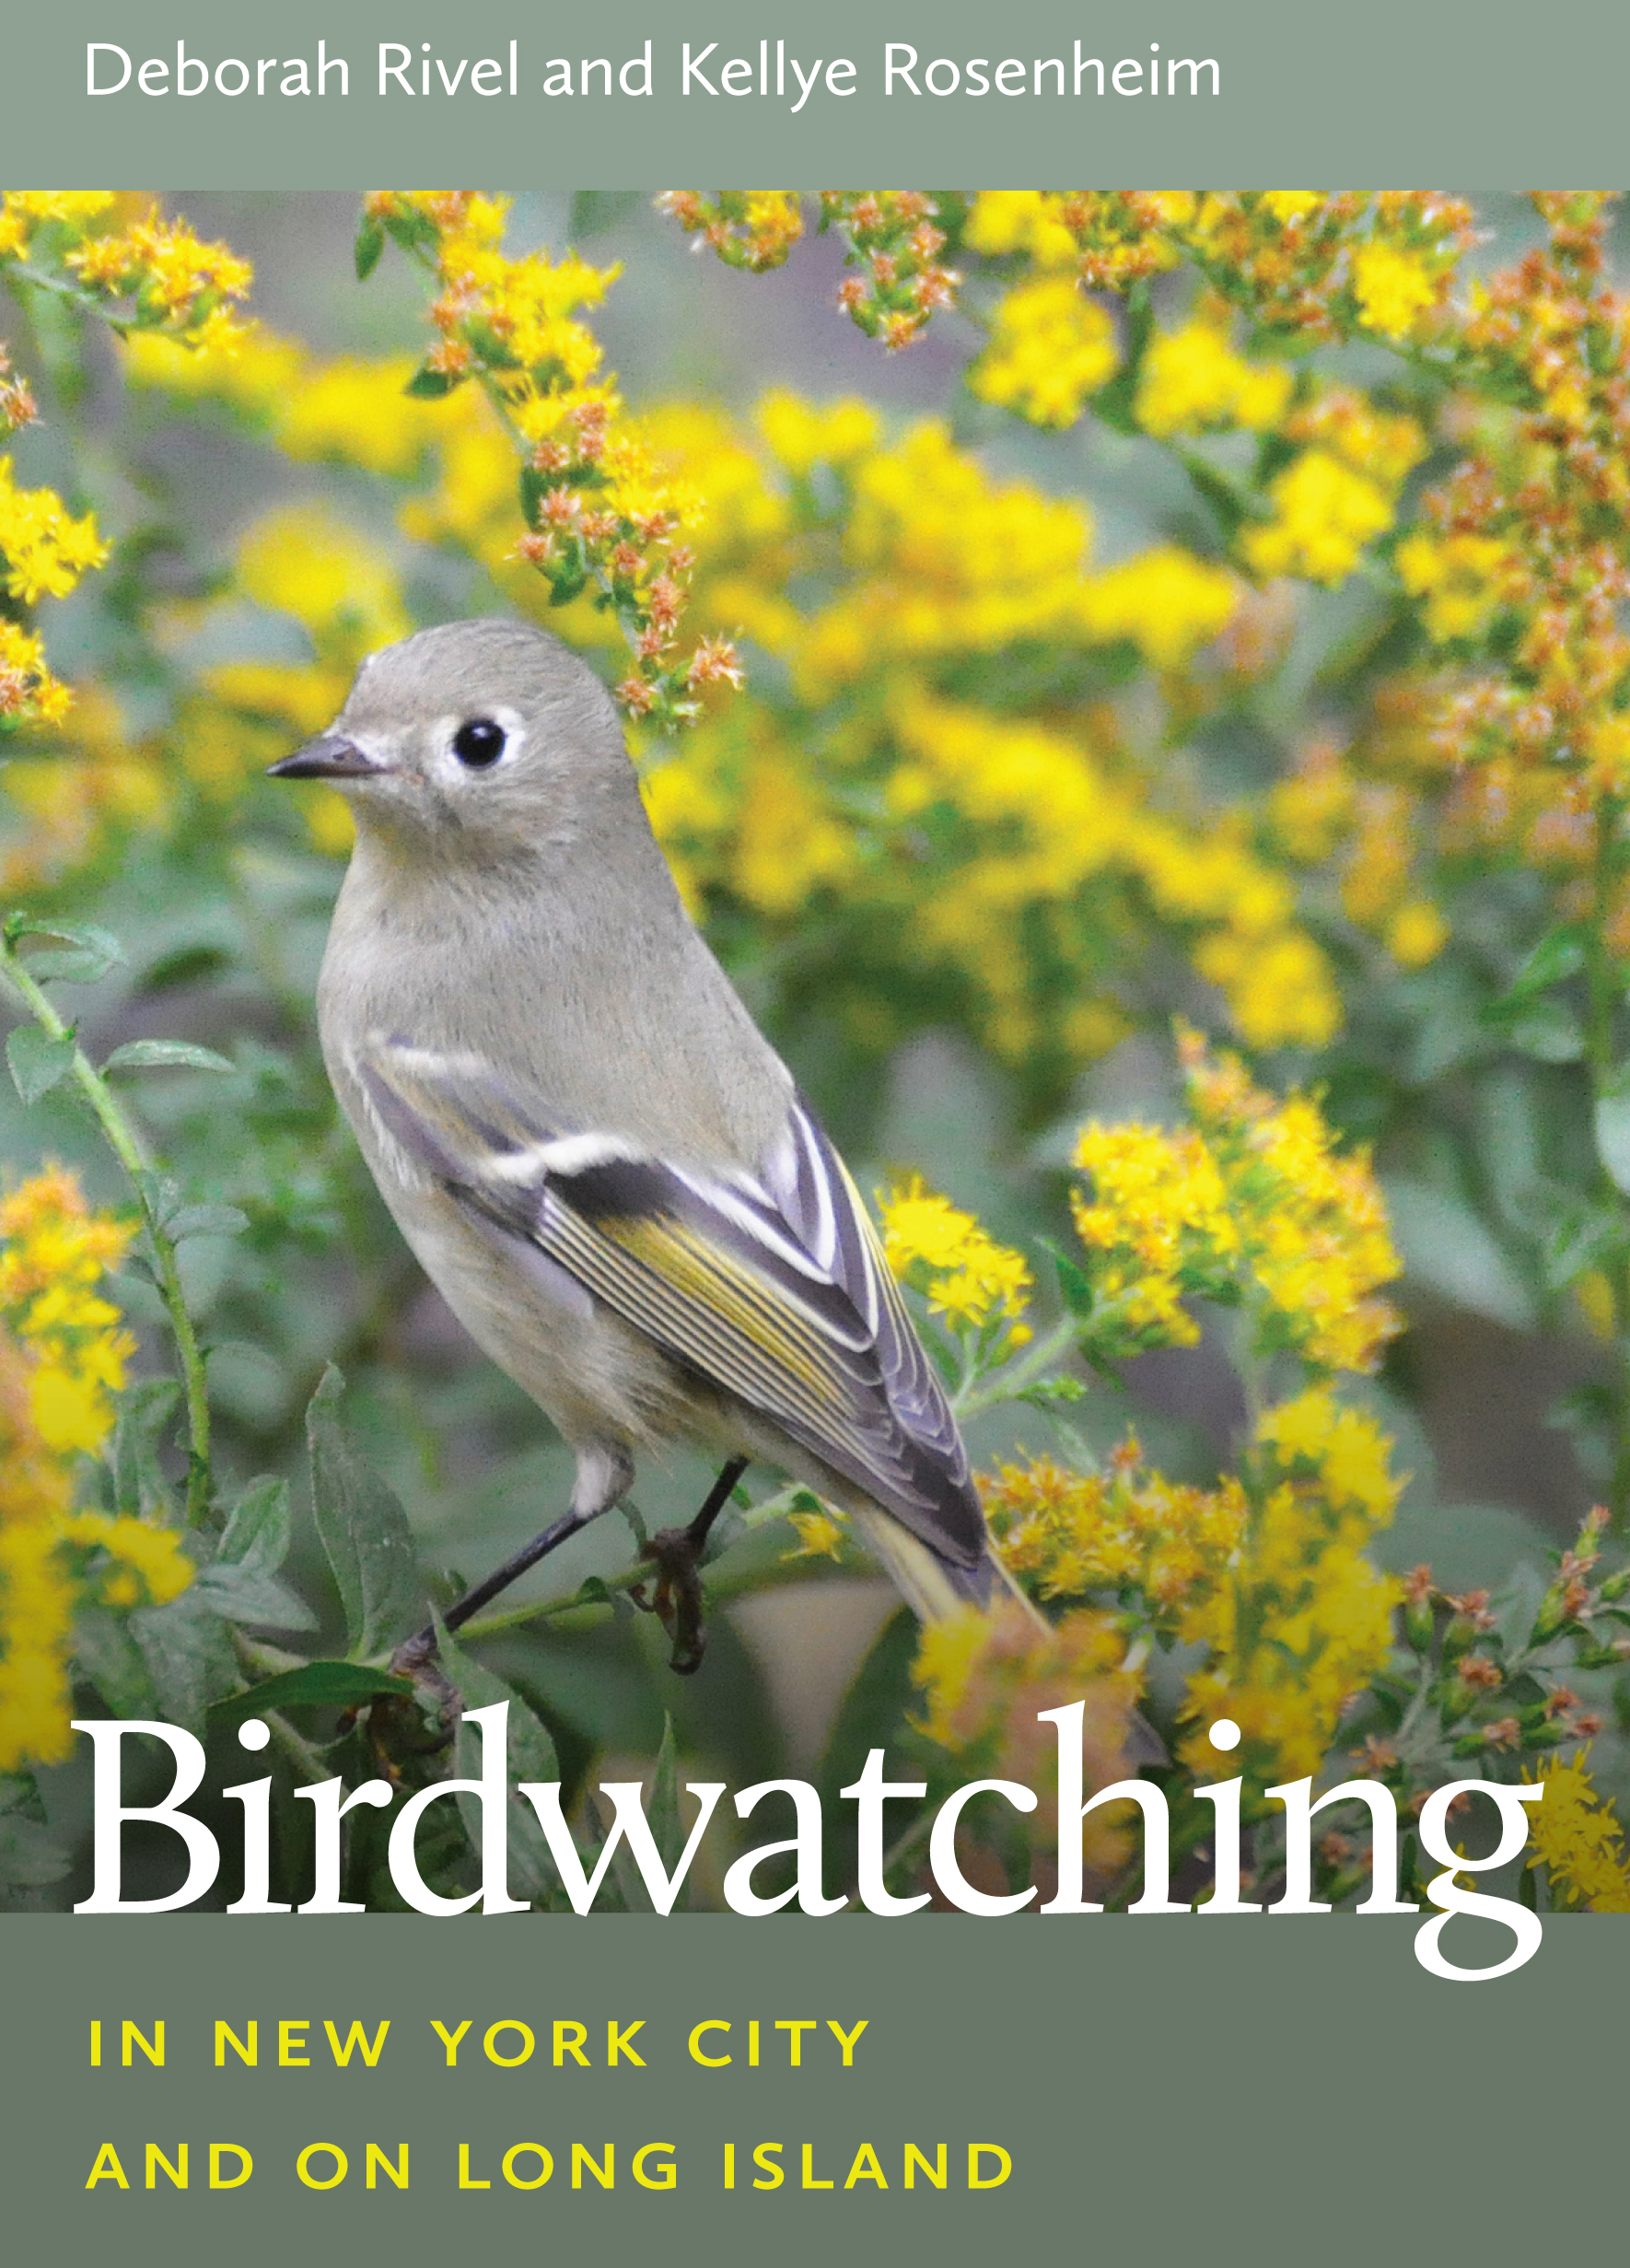 Birdwatching in New York City and on Long Island - Wildtones